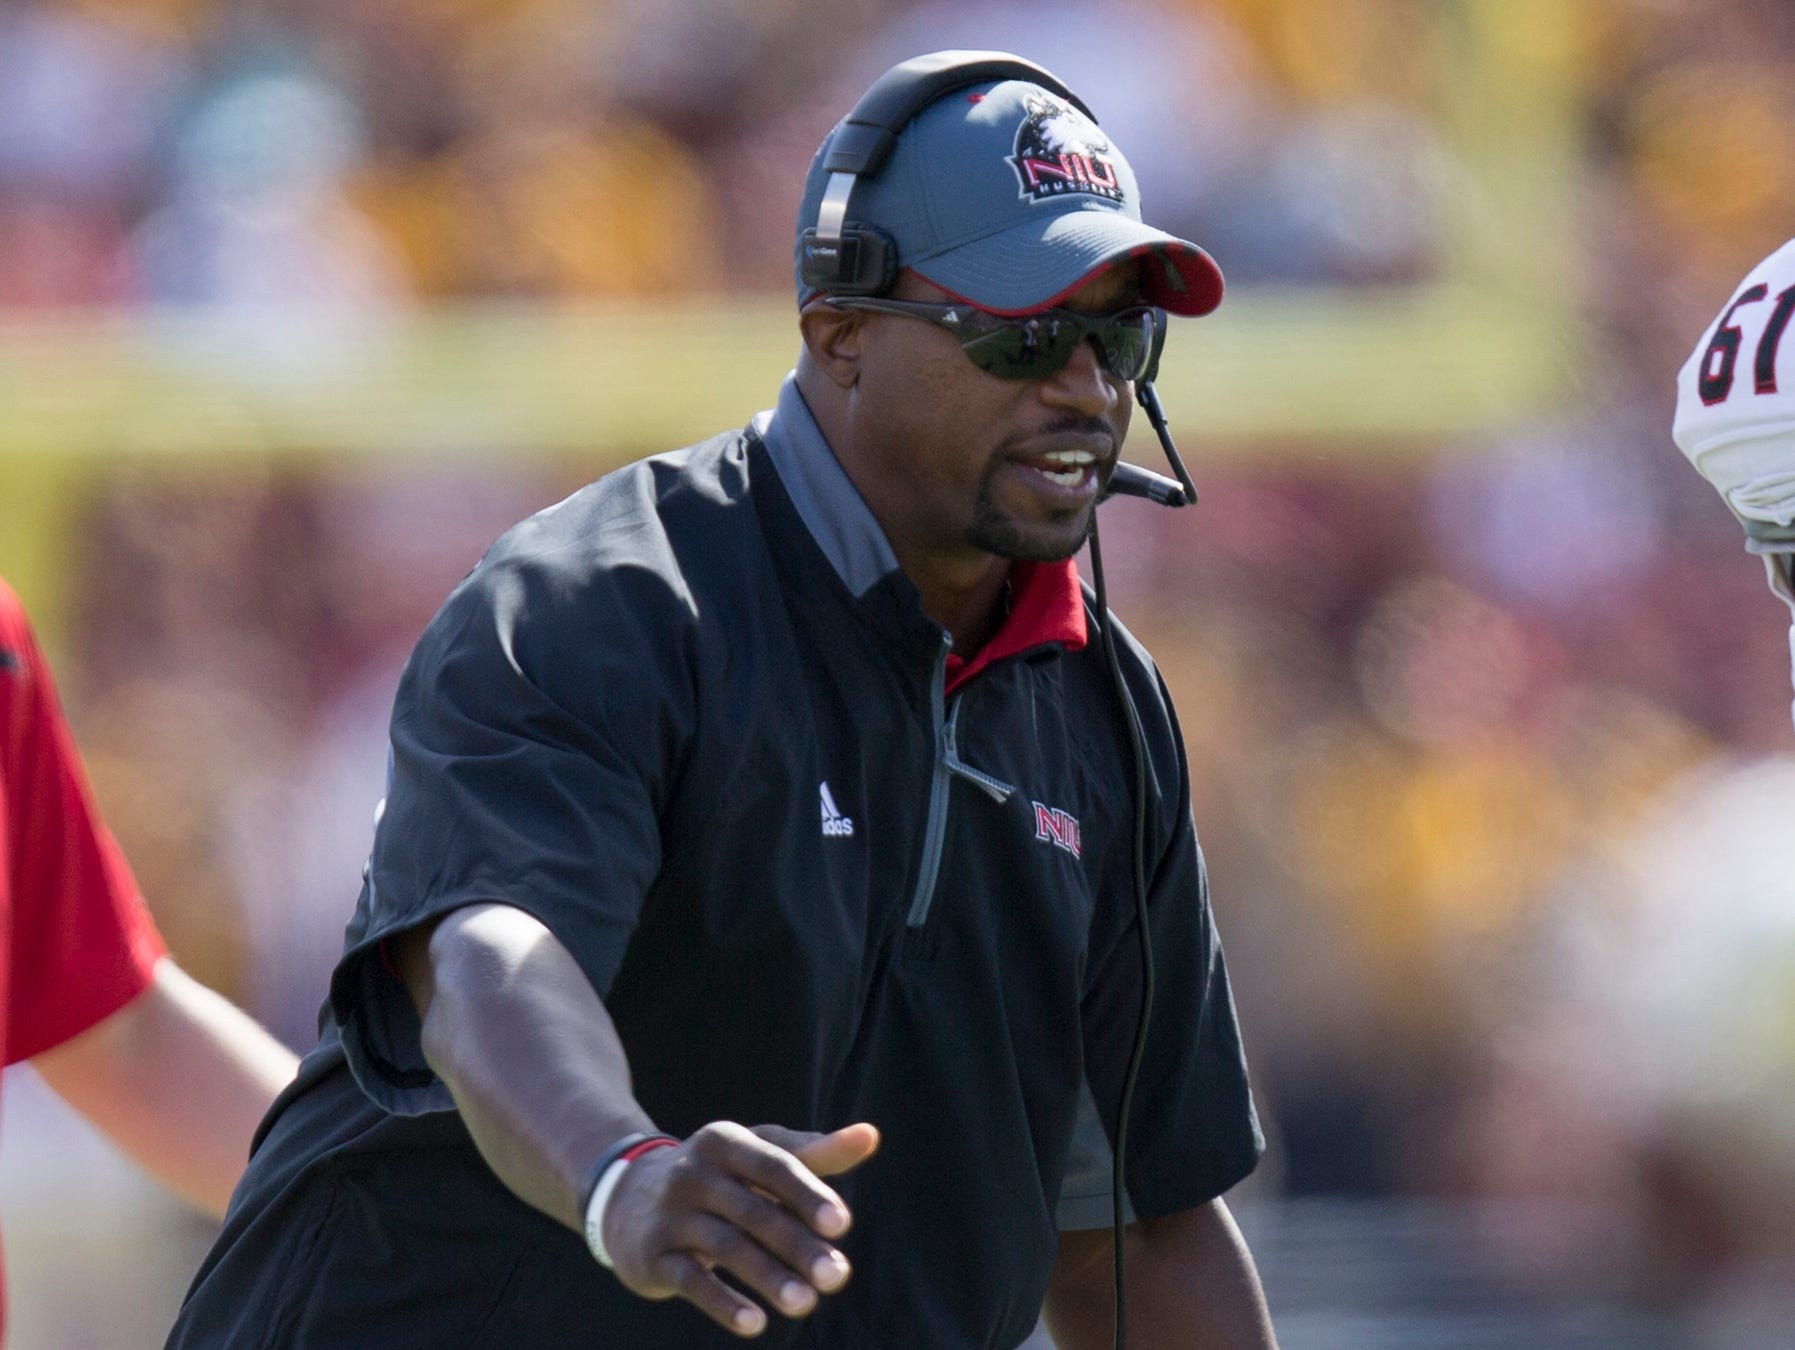 Kelton Copeland will become Iowa's wide receivers coach after four seasons at Northern Illinois.